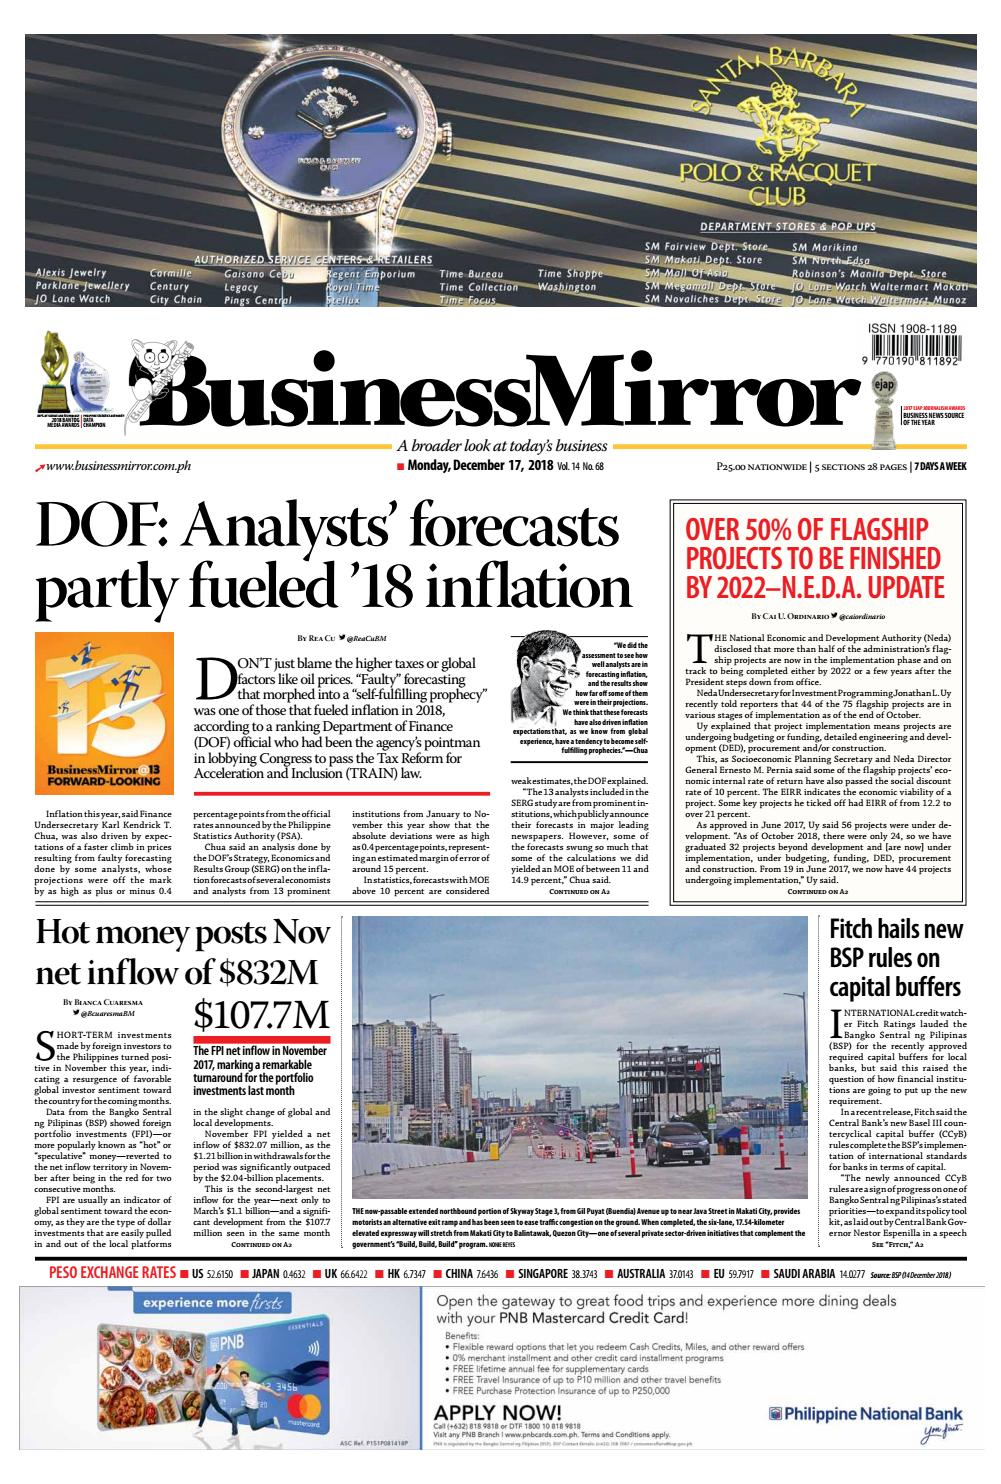 Businessmirror December 17, 2018 by BusinessMirror - issuu